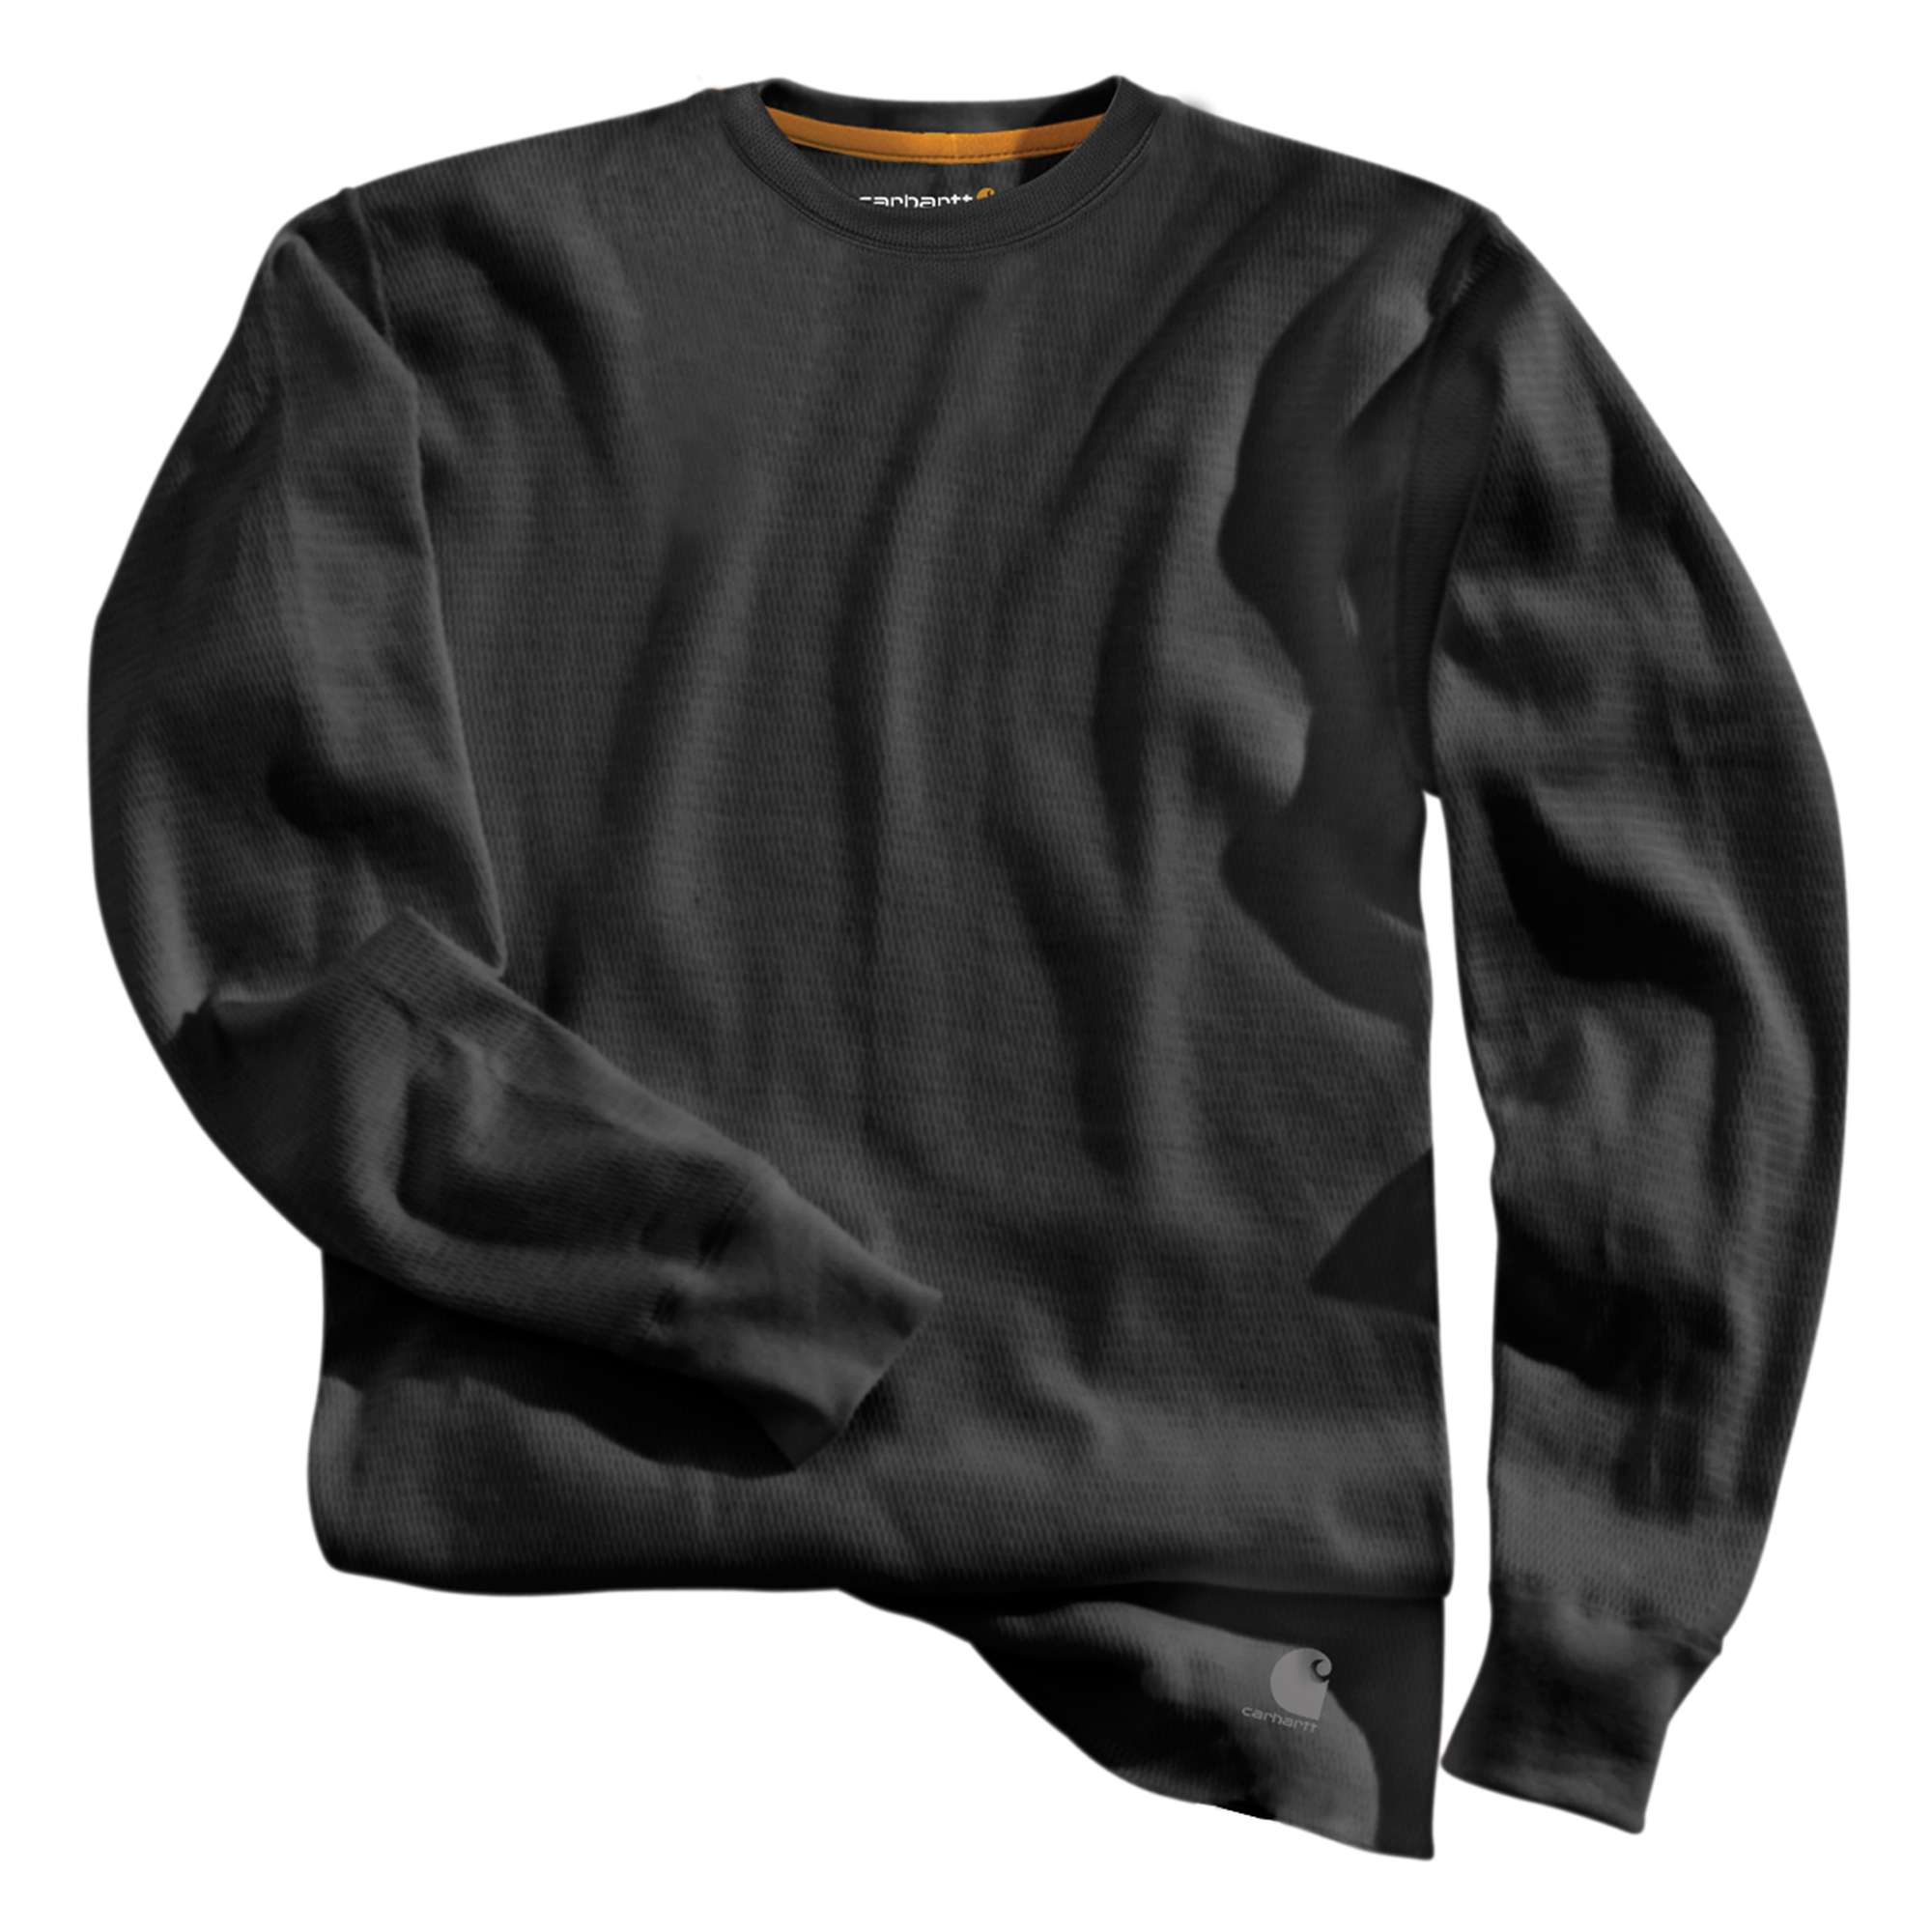 MEN'S BASE FORCE EXTREMES® SUPER-COLD WEATHER CREWNECK